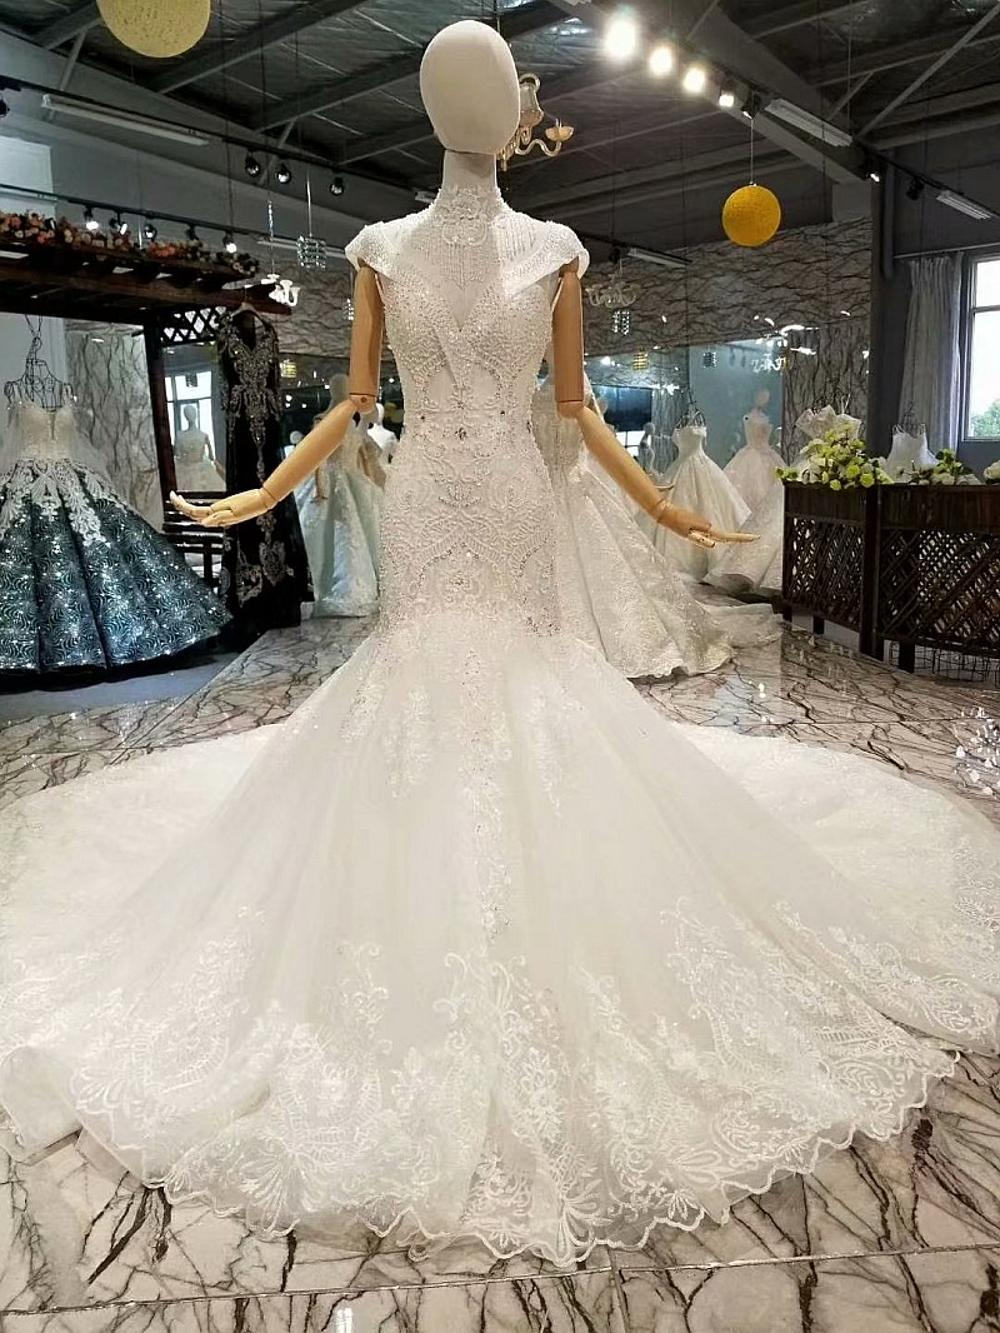 220b294a89a5 China Sheer Wedding, China Sheer Wedding Manufacturers and Suppliers on  Alibaba.com